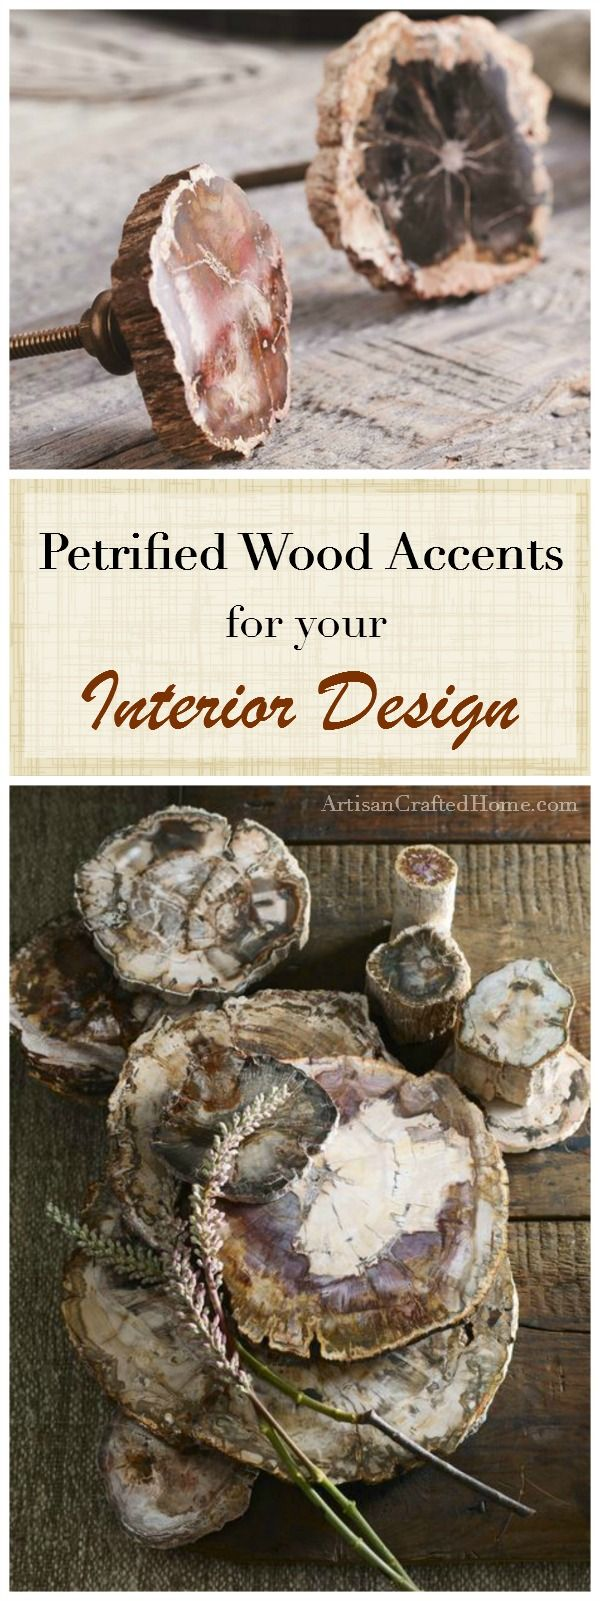 Gorgeous petrified wood accents for your home decor! Decorative slabs, drawer pulls, bathroom sinks, etc.